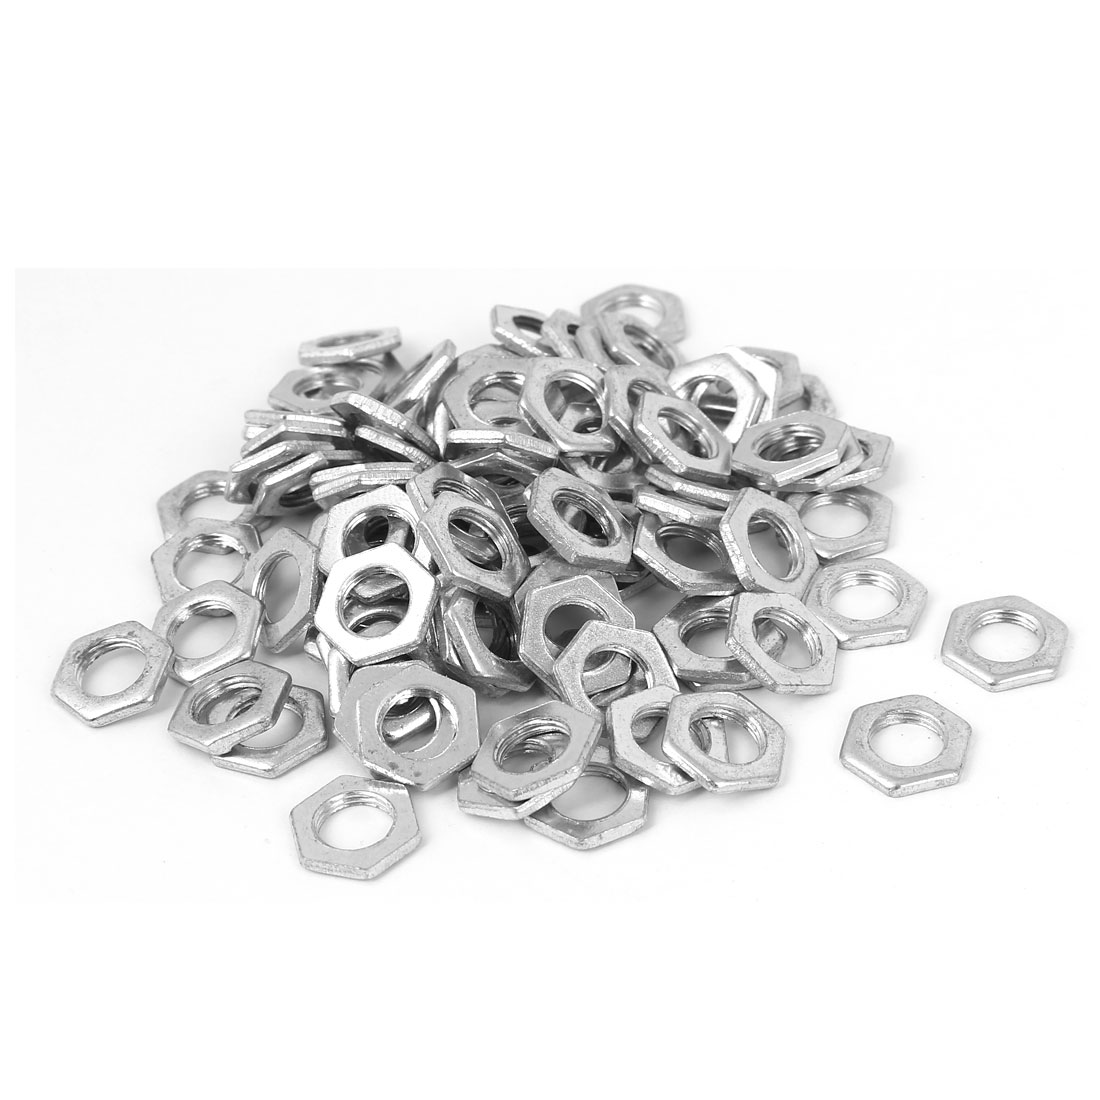 M8x2mm Zinc Plated Hex Nuts Fastener 100pcs for Screws Bolts